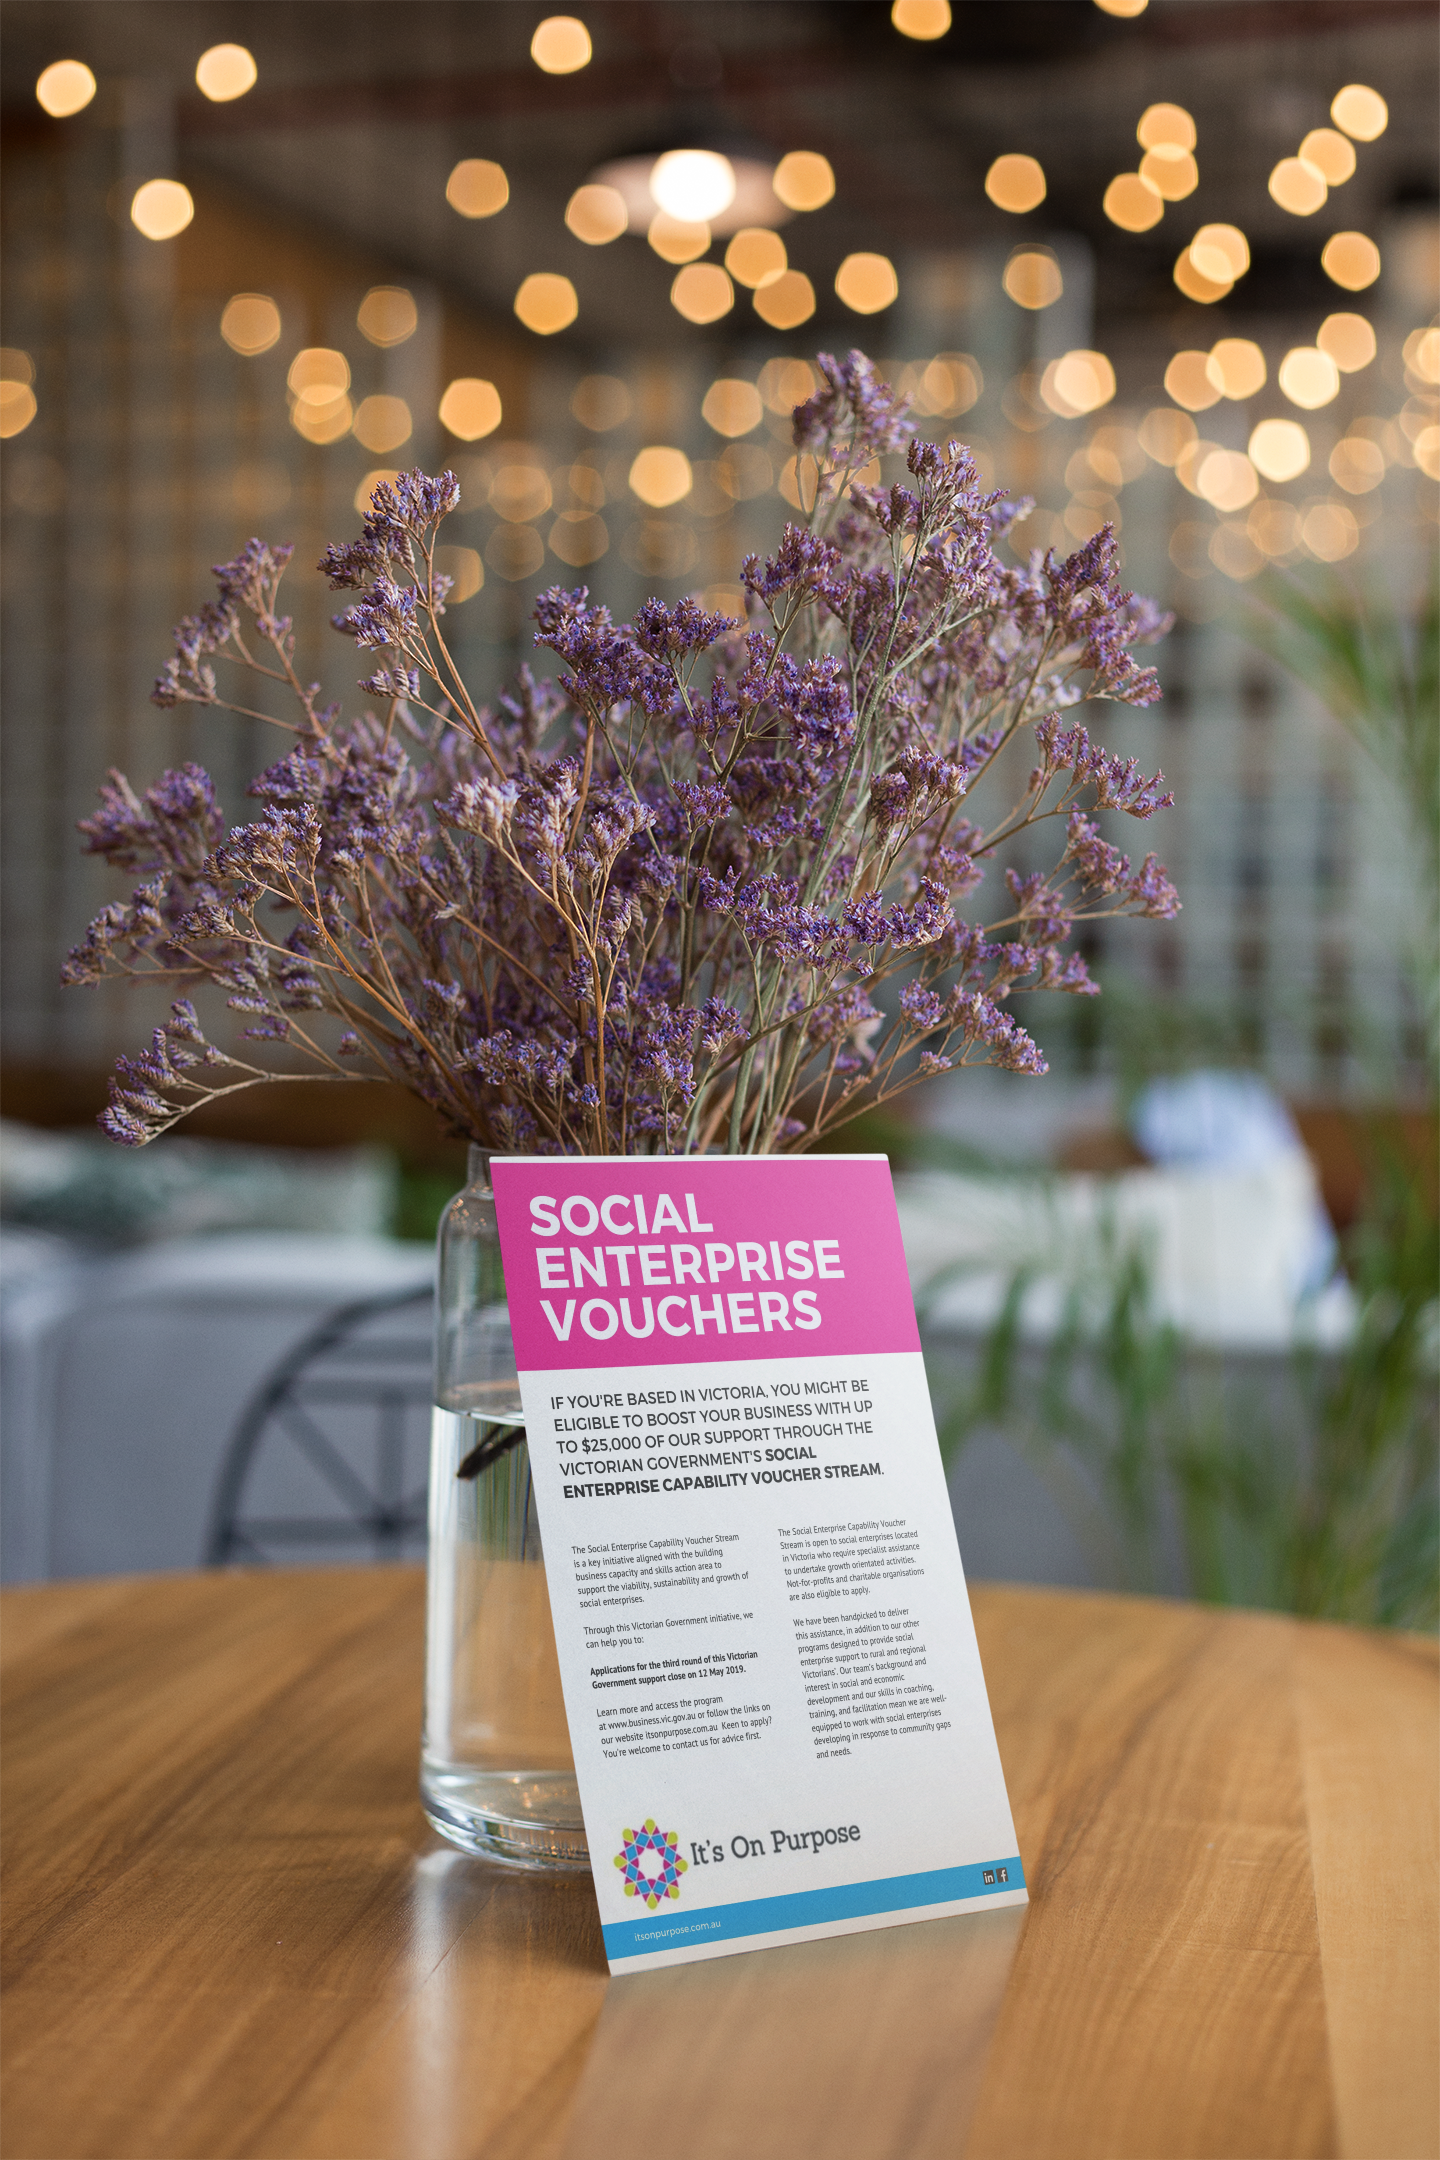 flyer-mockup-leaning-against-a-vase-with-purple-flowers-21864.png